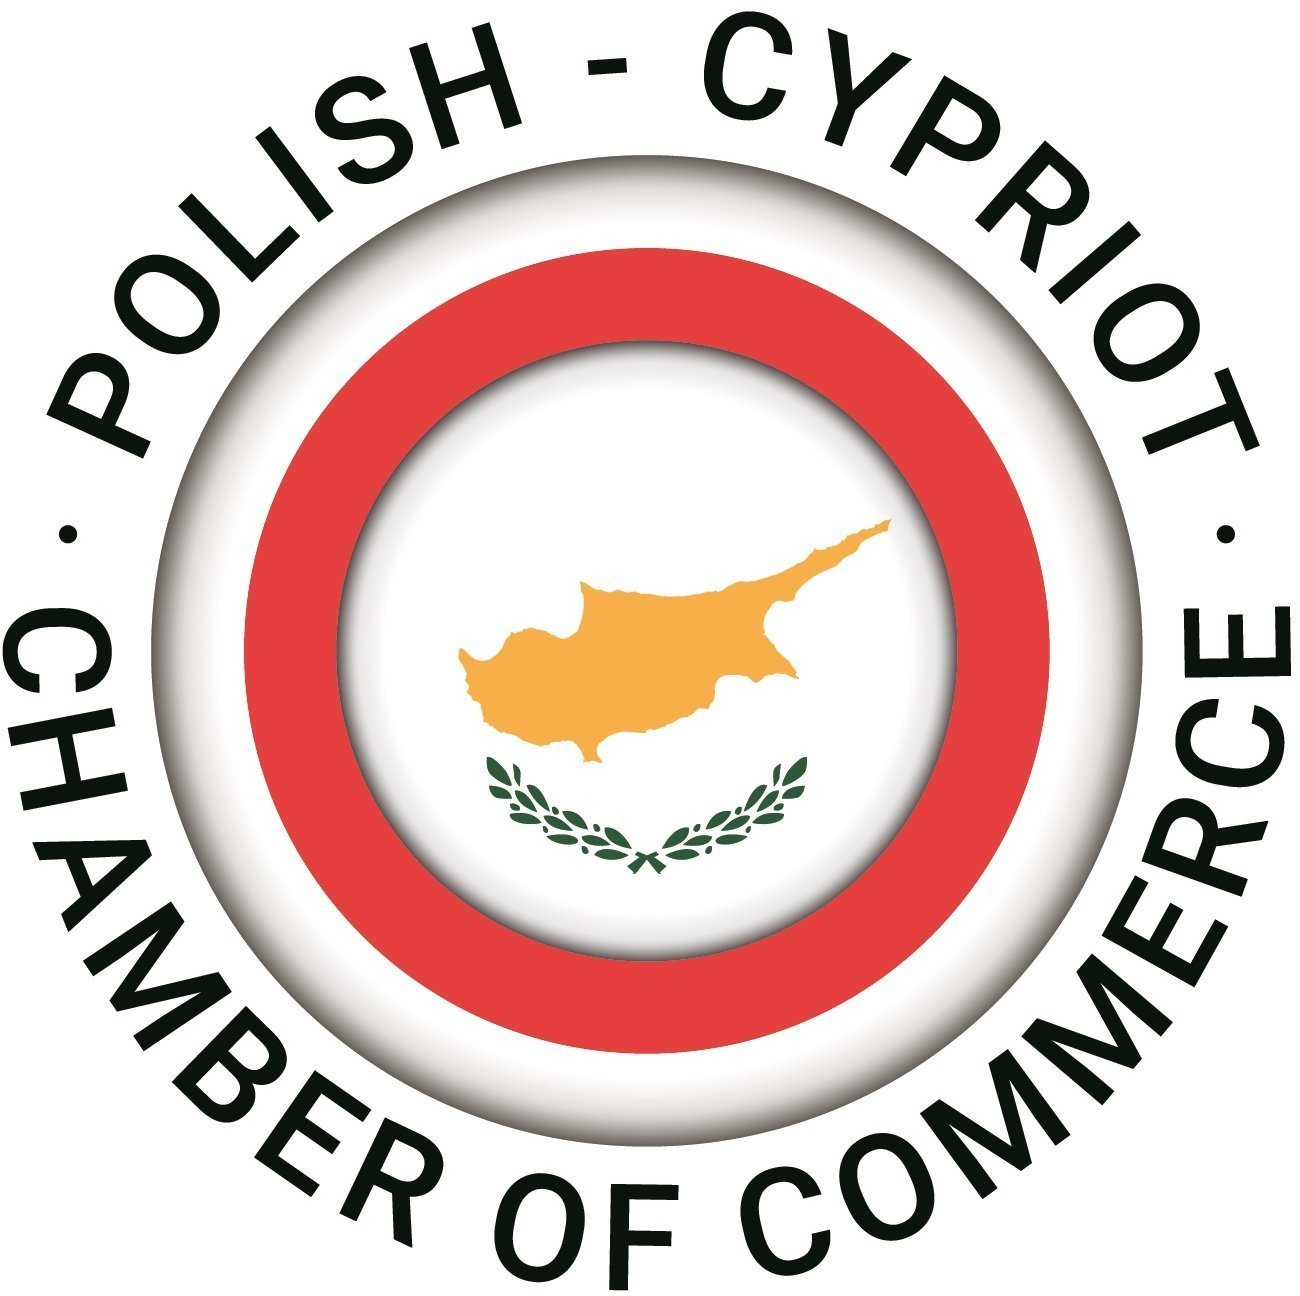 Polish-Cypriot Chamber of Commerce